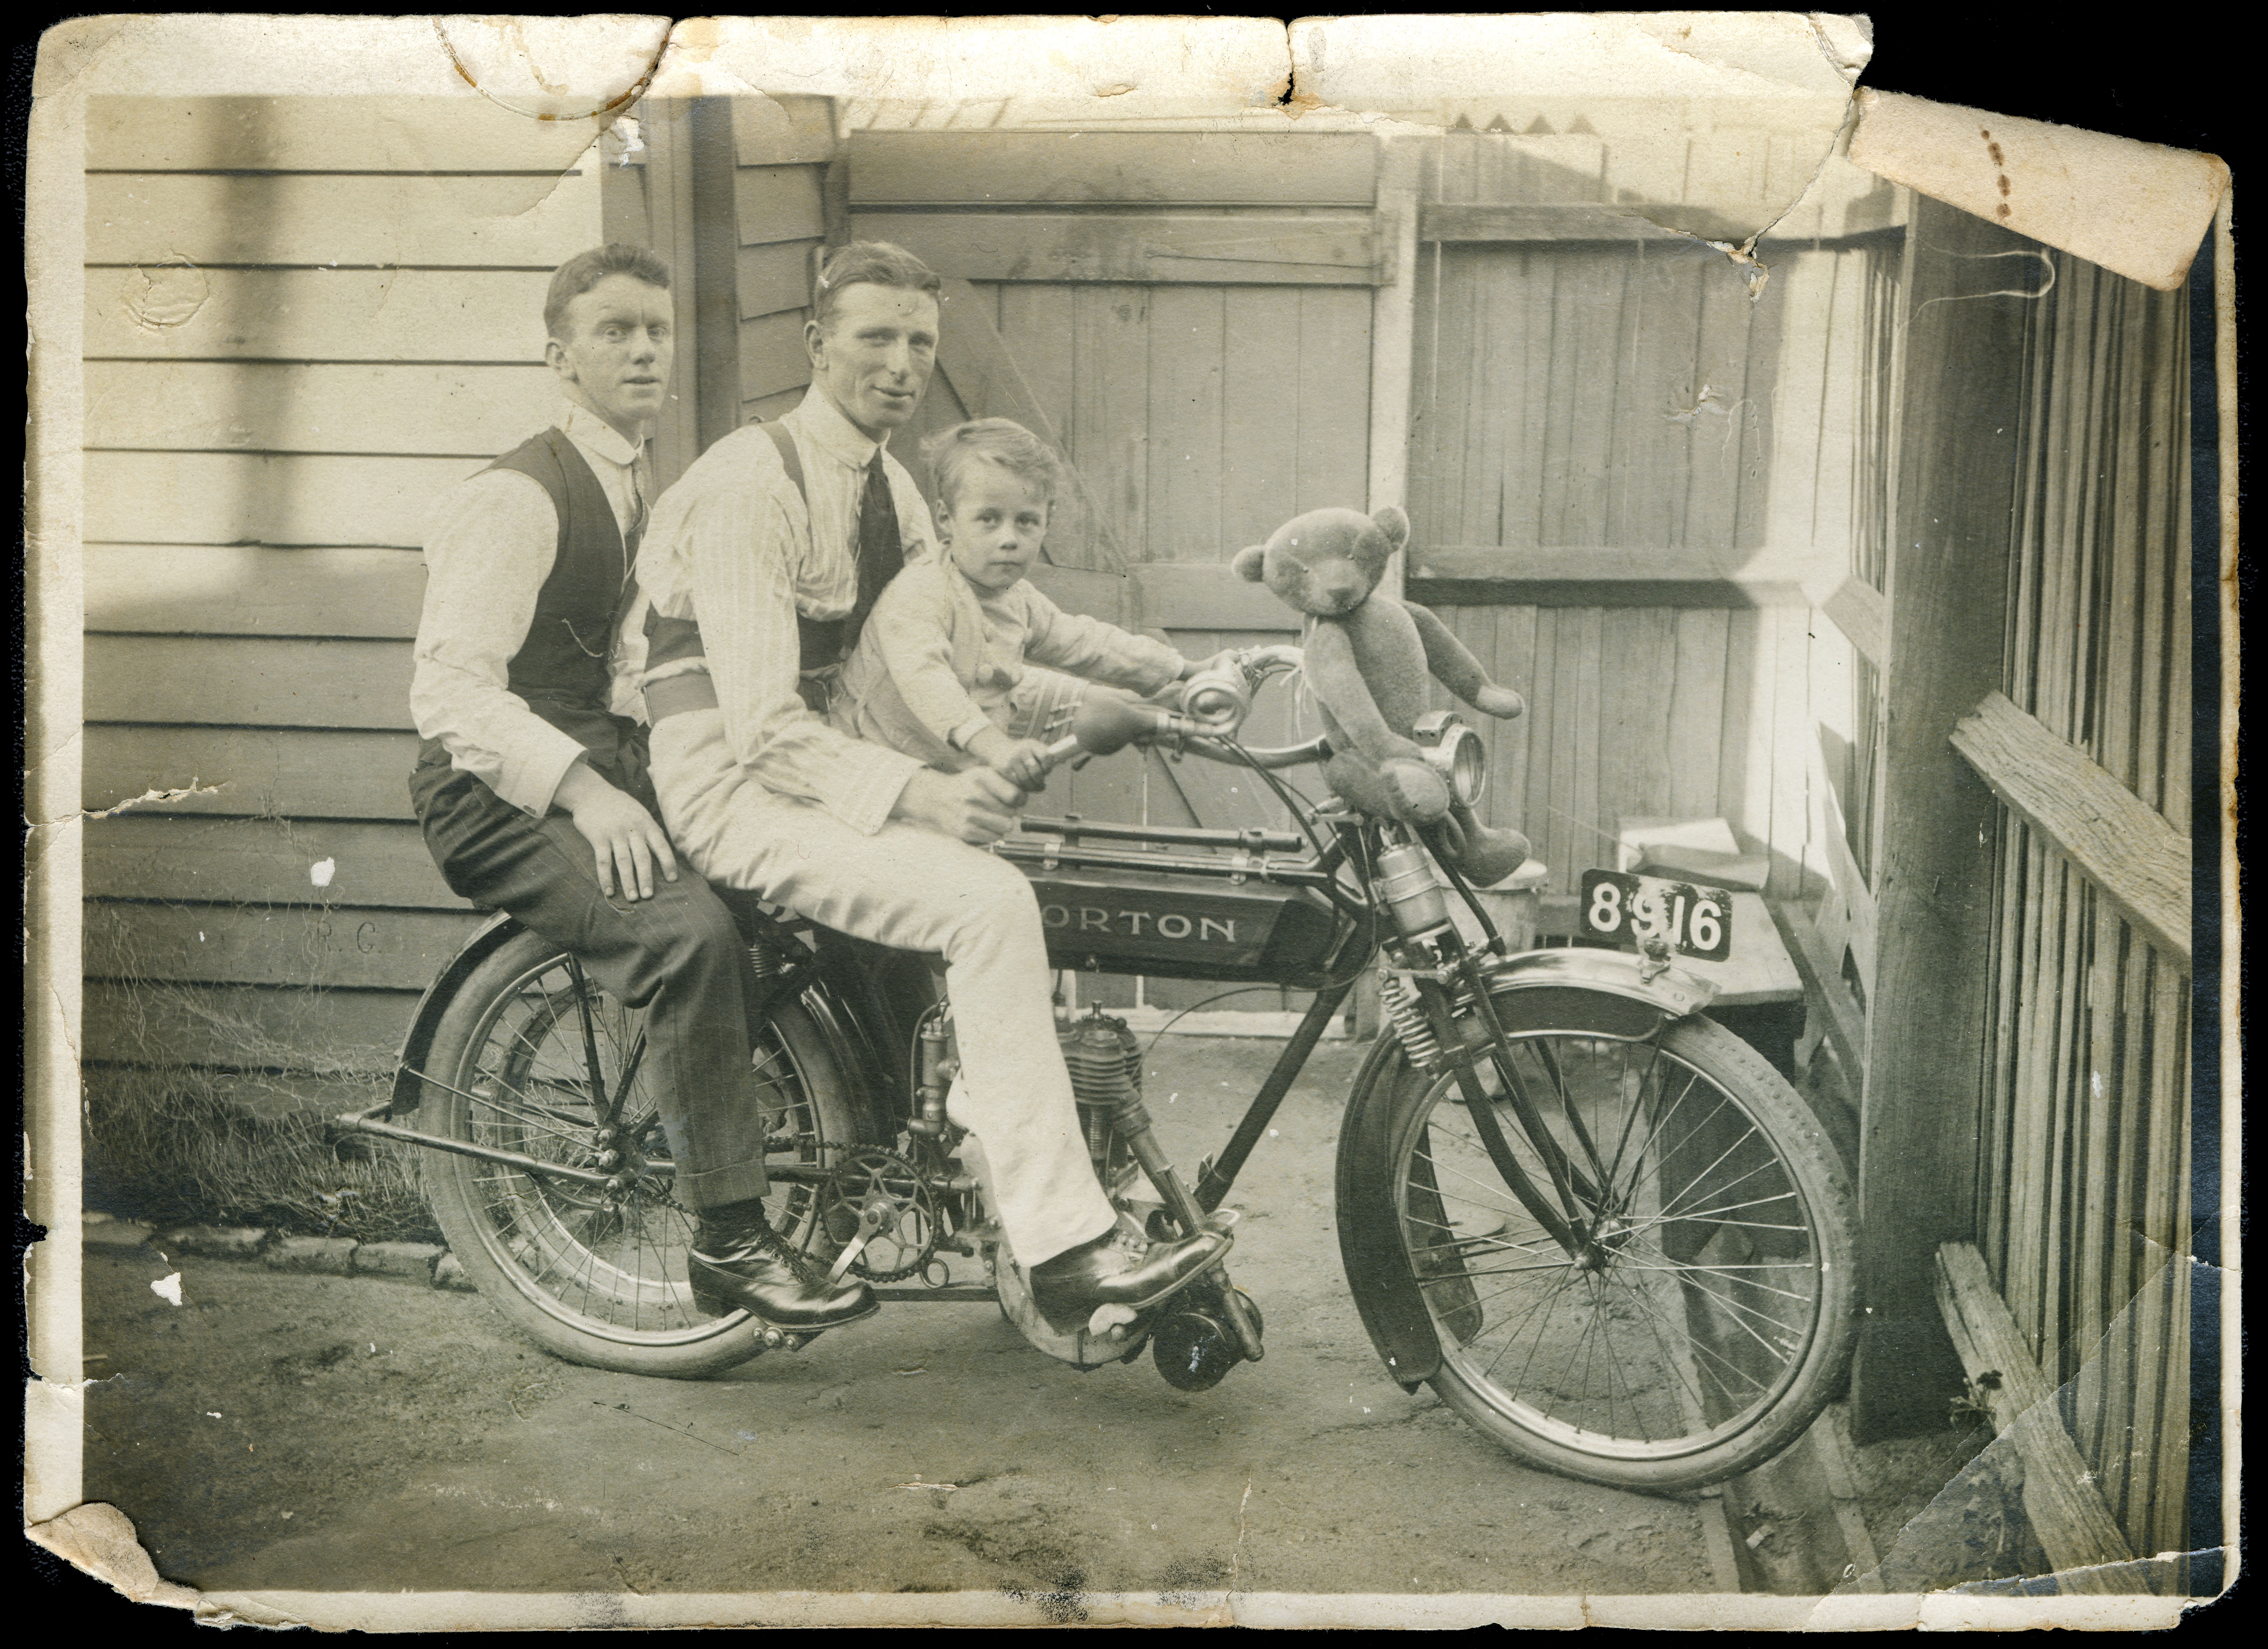 Two men and a young boy (Tom Wild) on a motorbike, with a teddy bear sitting on the handle bars